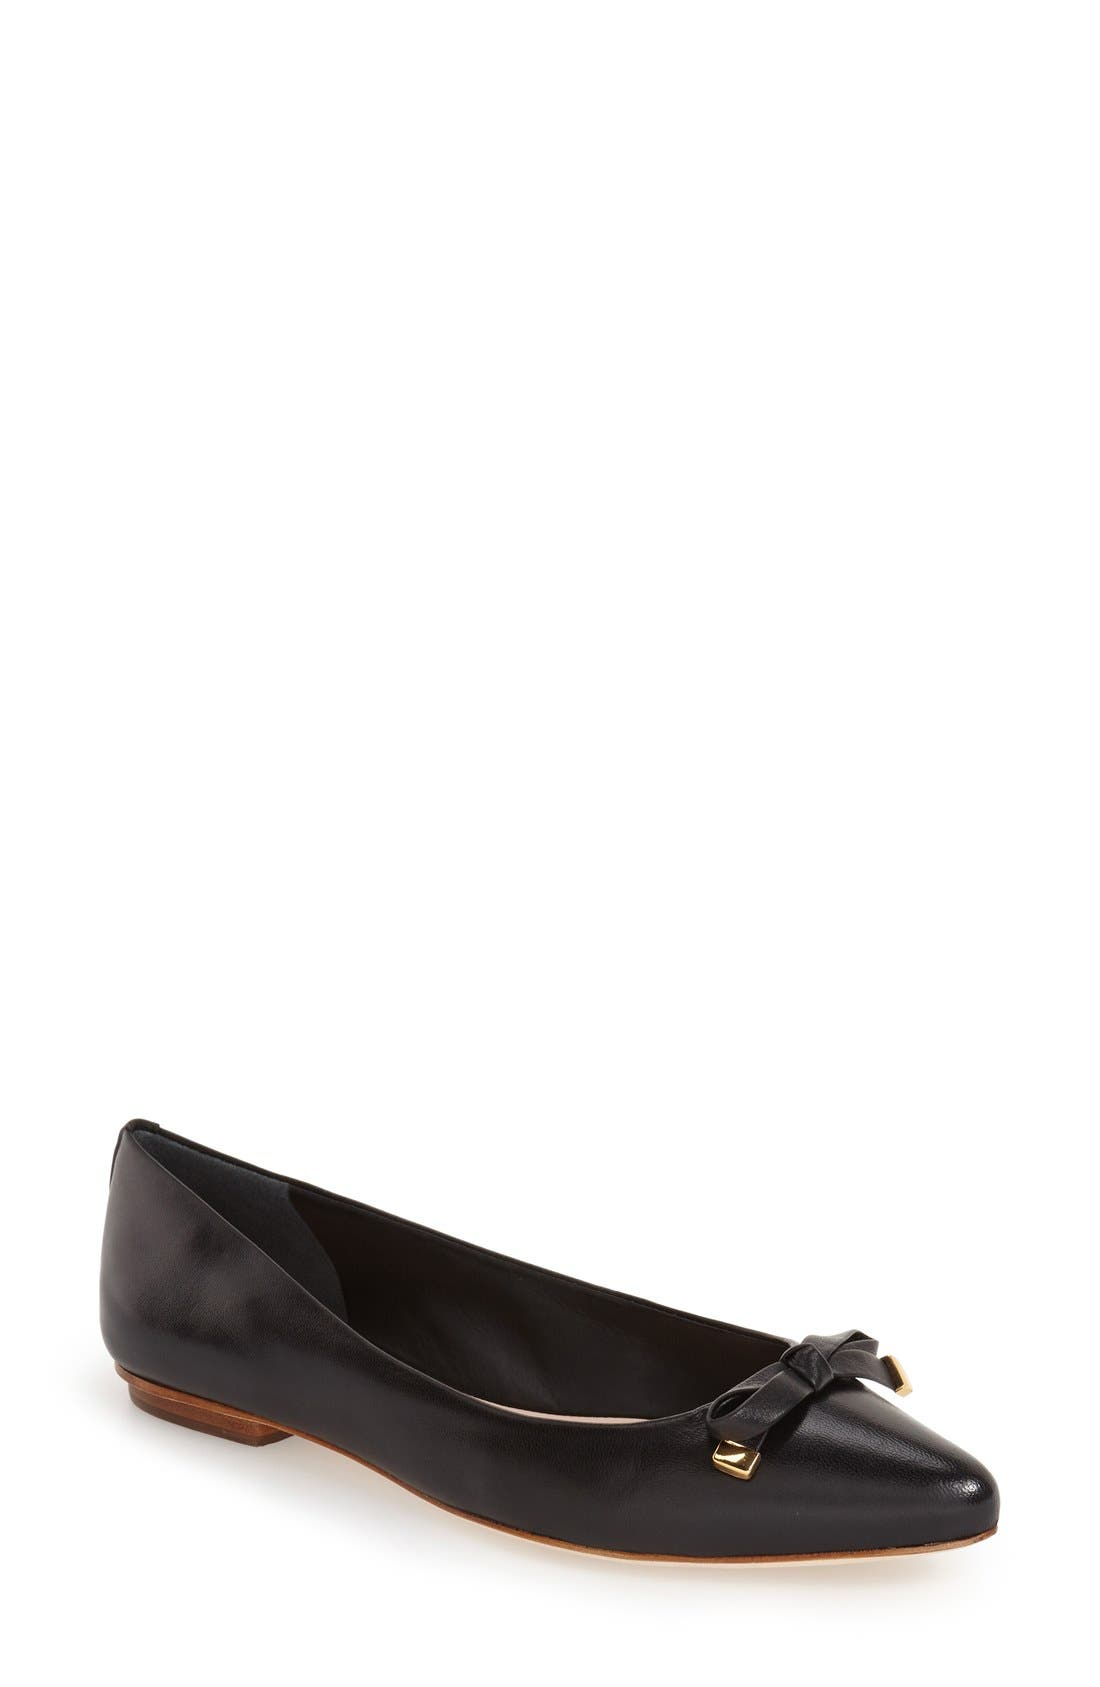 Alternate Image 1 Selected - kate spade new york 'emma' pointy toe flat (Women)